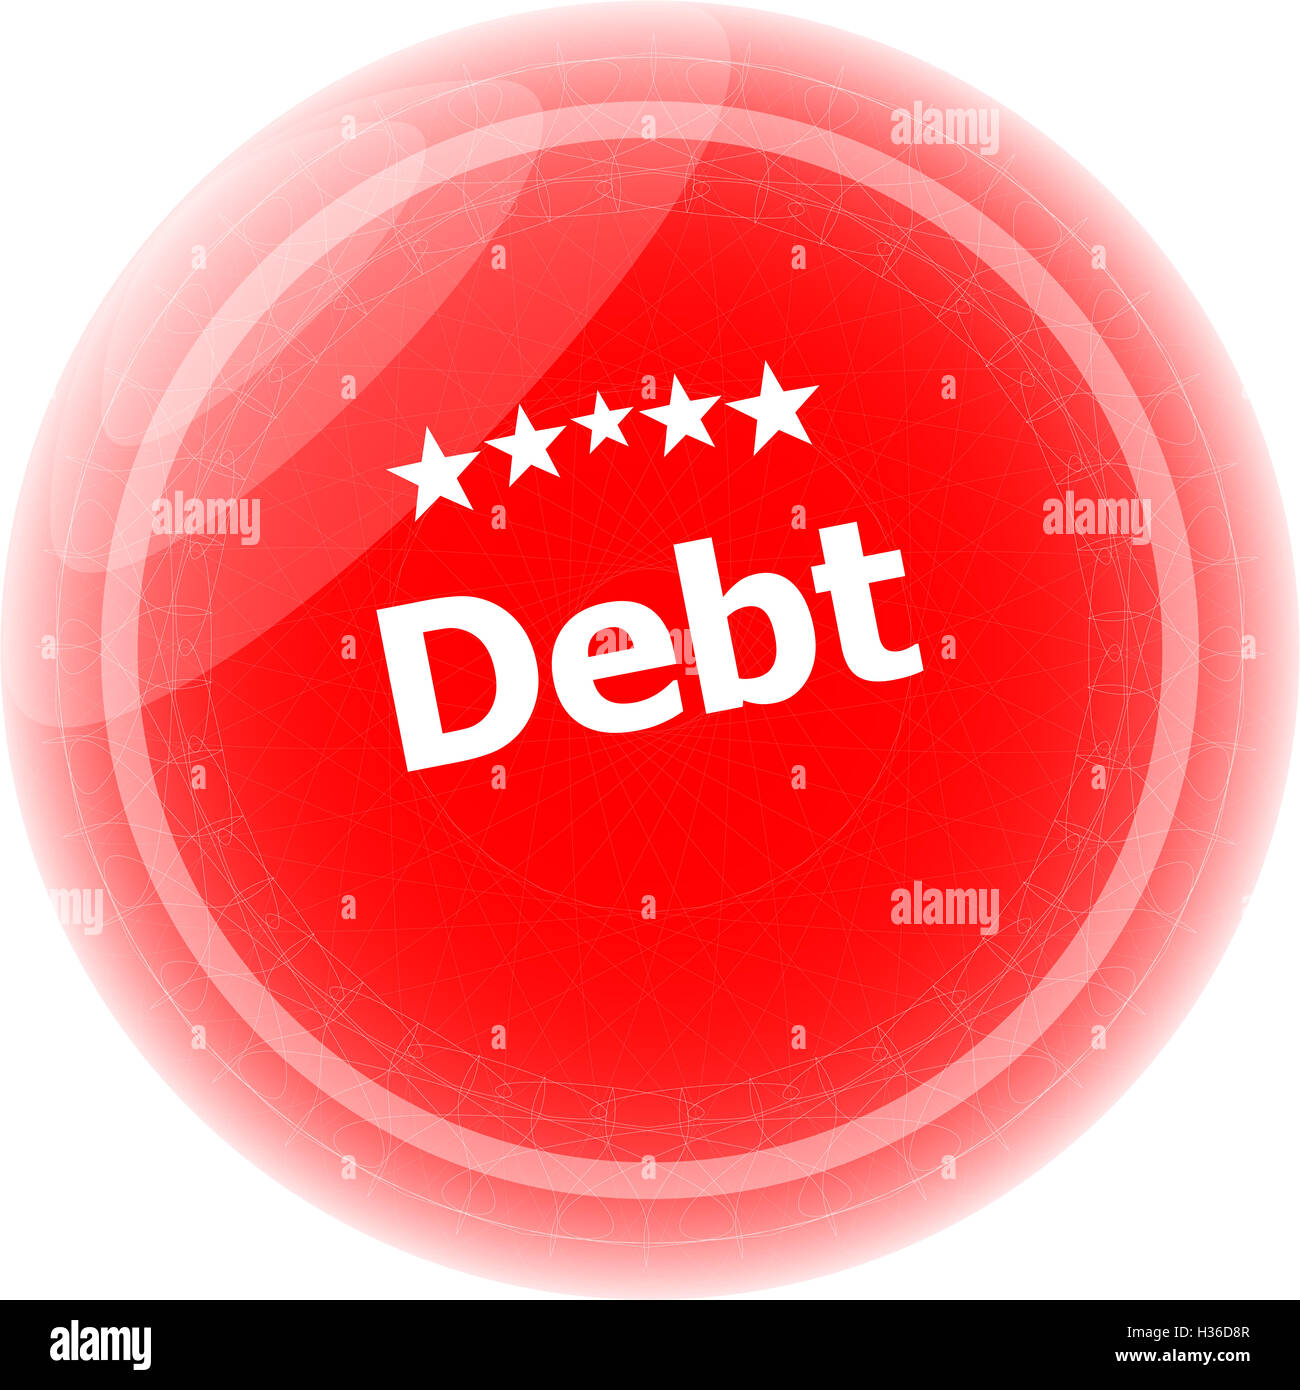 debt word on red stickers button, business label - Stock Image